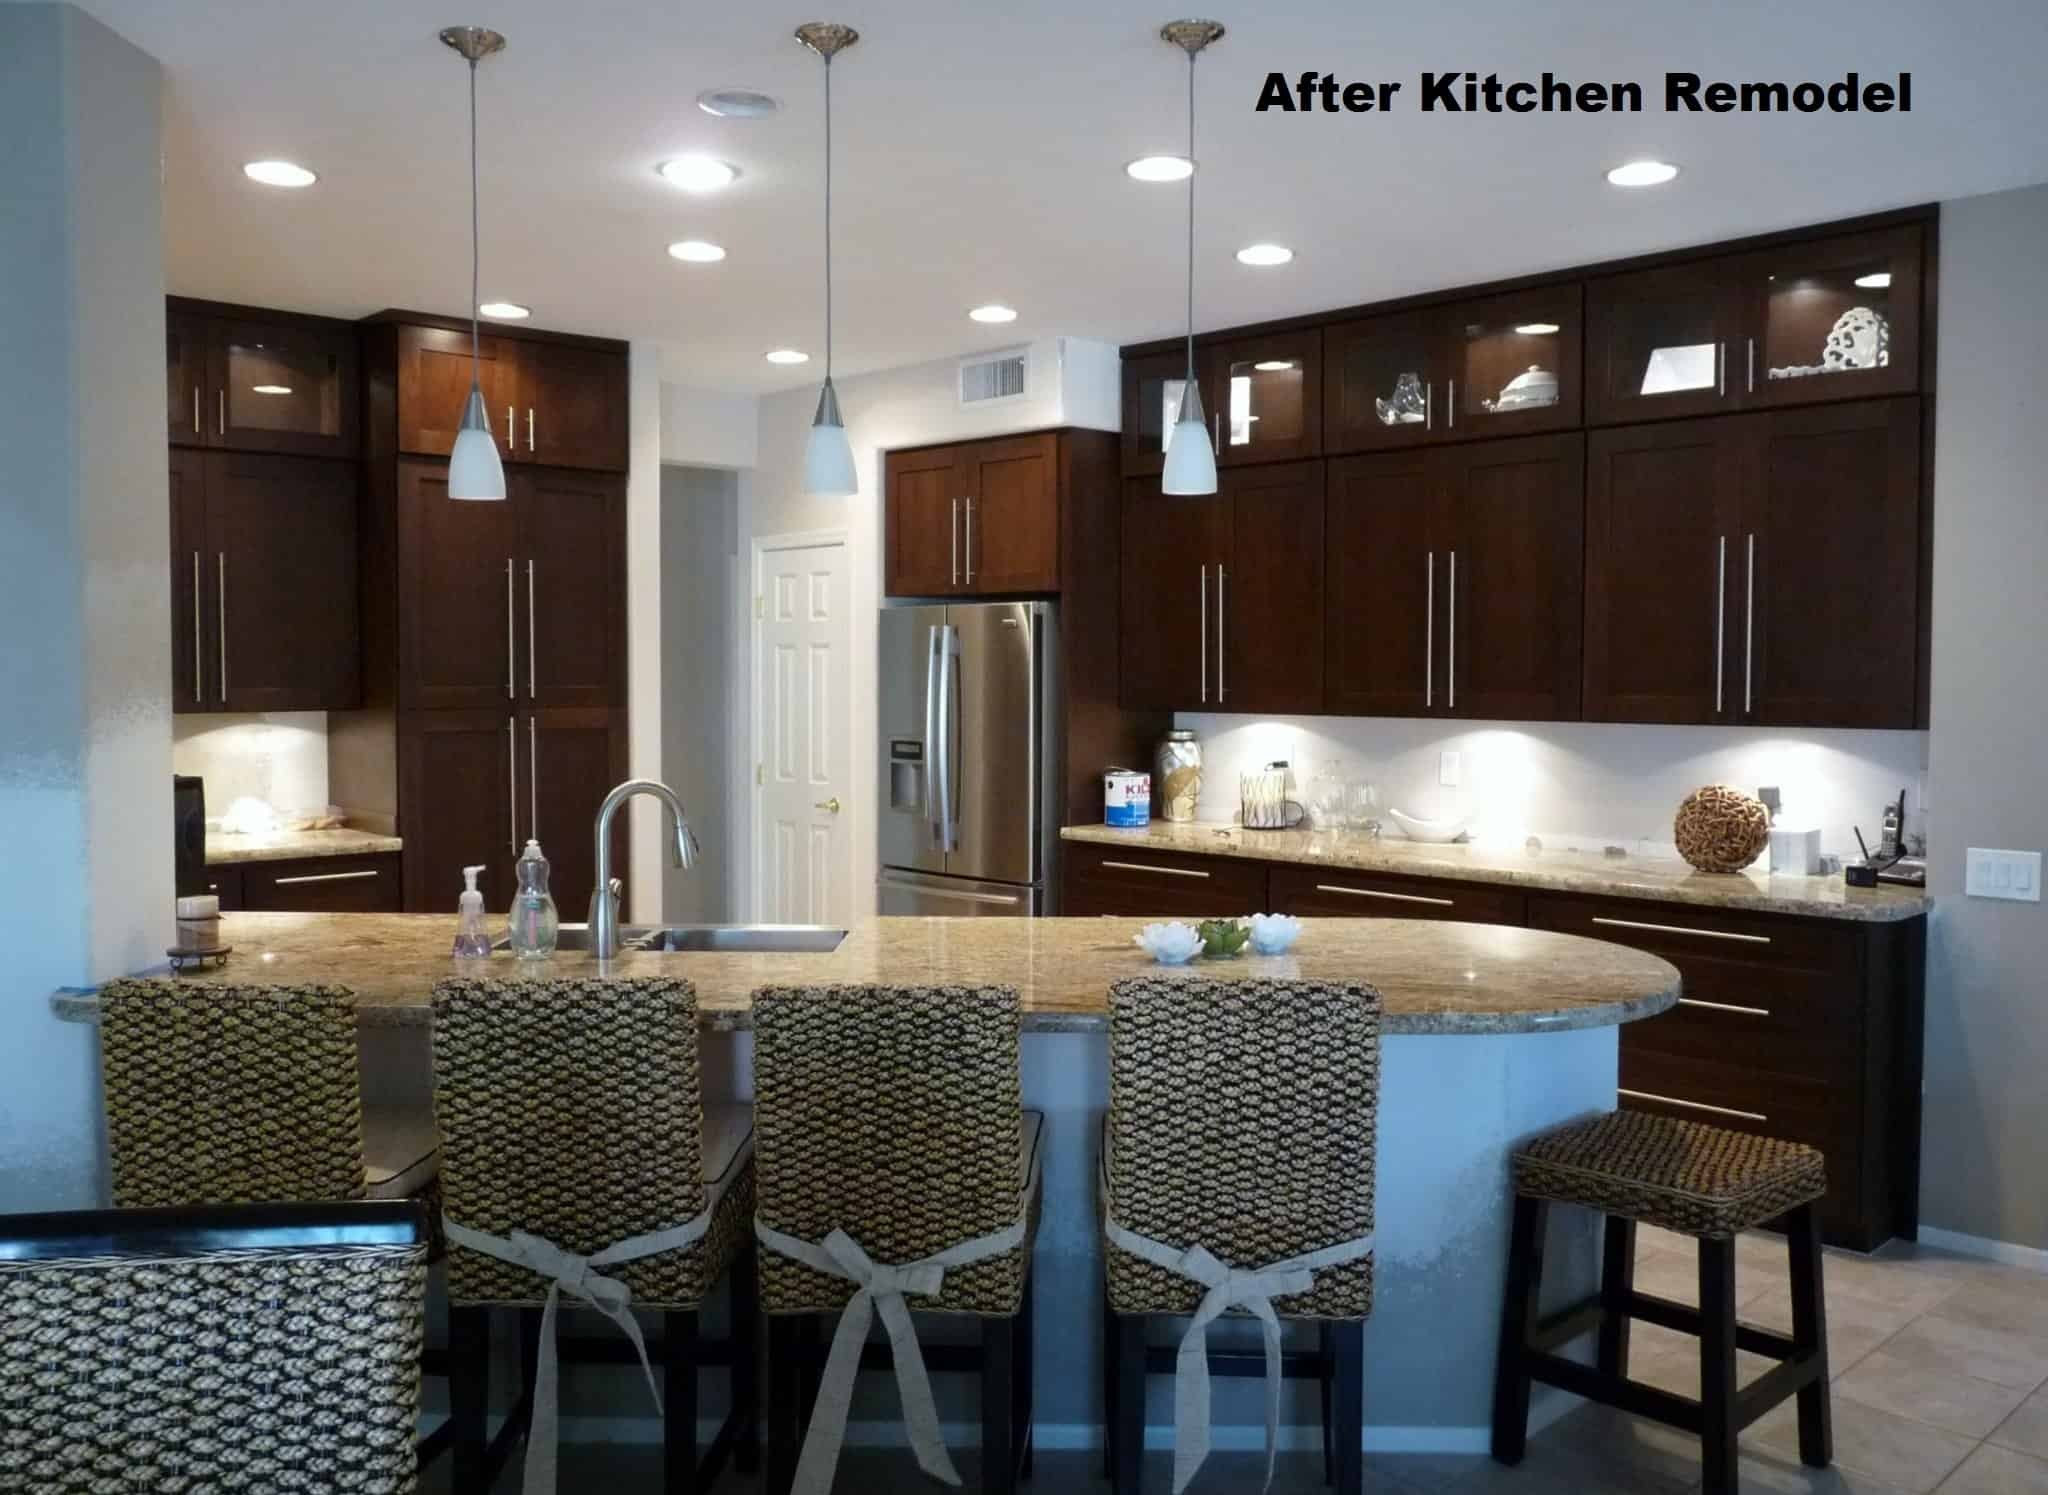 Kitchen remodeled with new cabinets